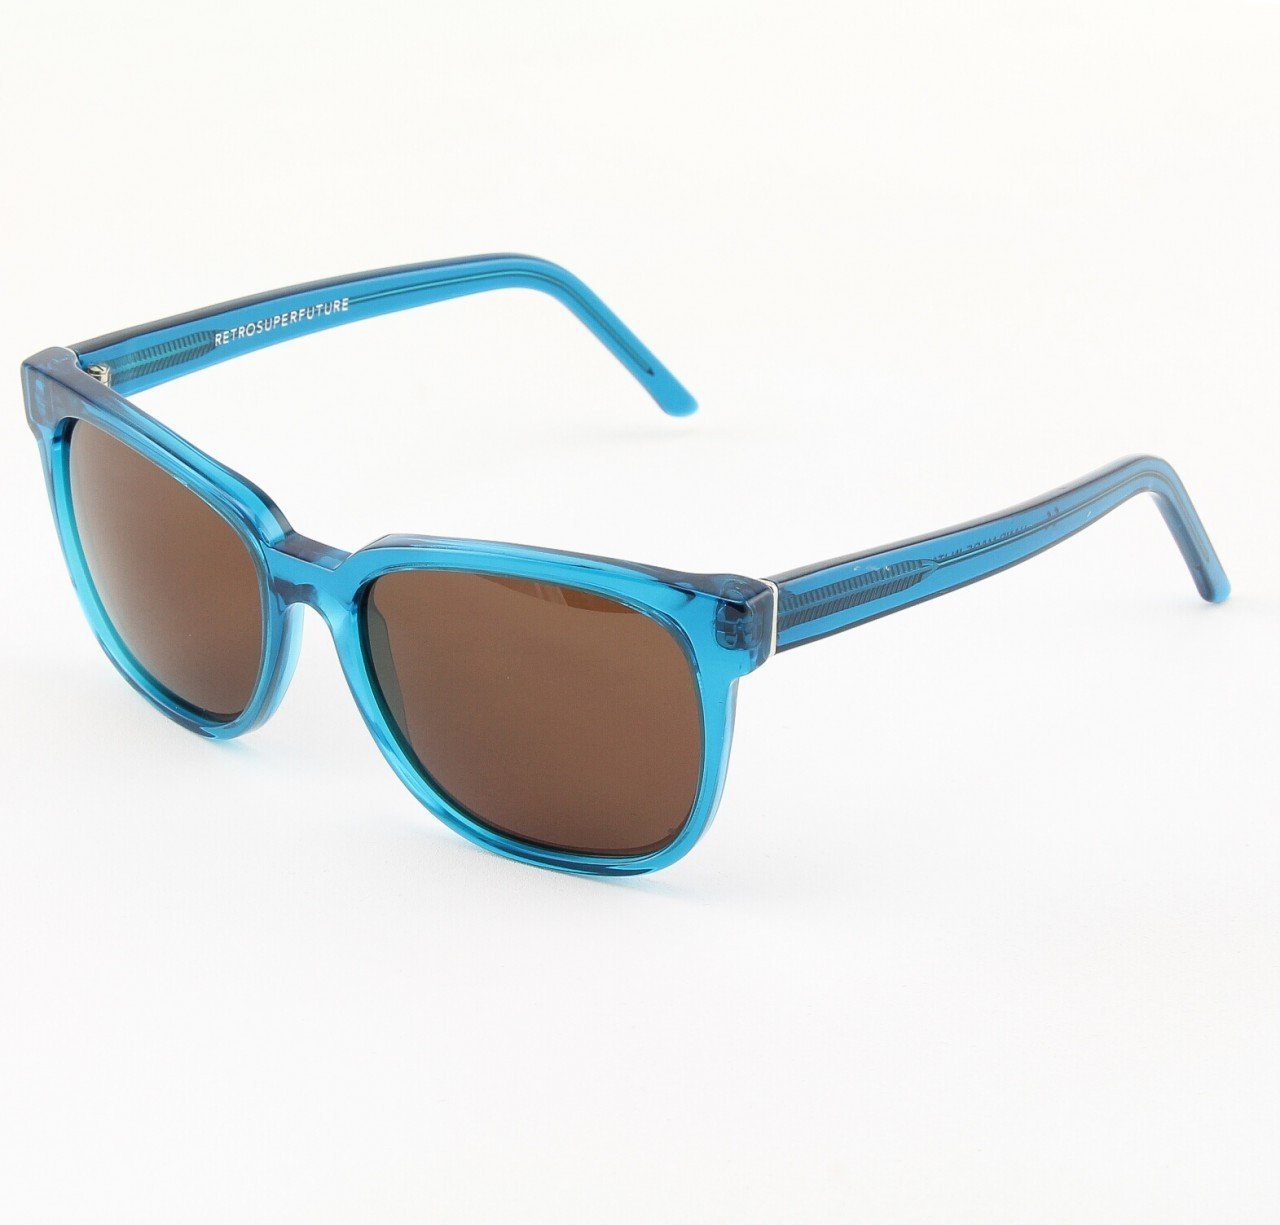 Super People 561/3A Sunglasses Blue with Black Zeiss Lenses by RETROSUPERFUTURE